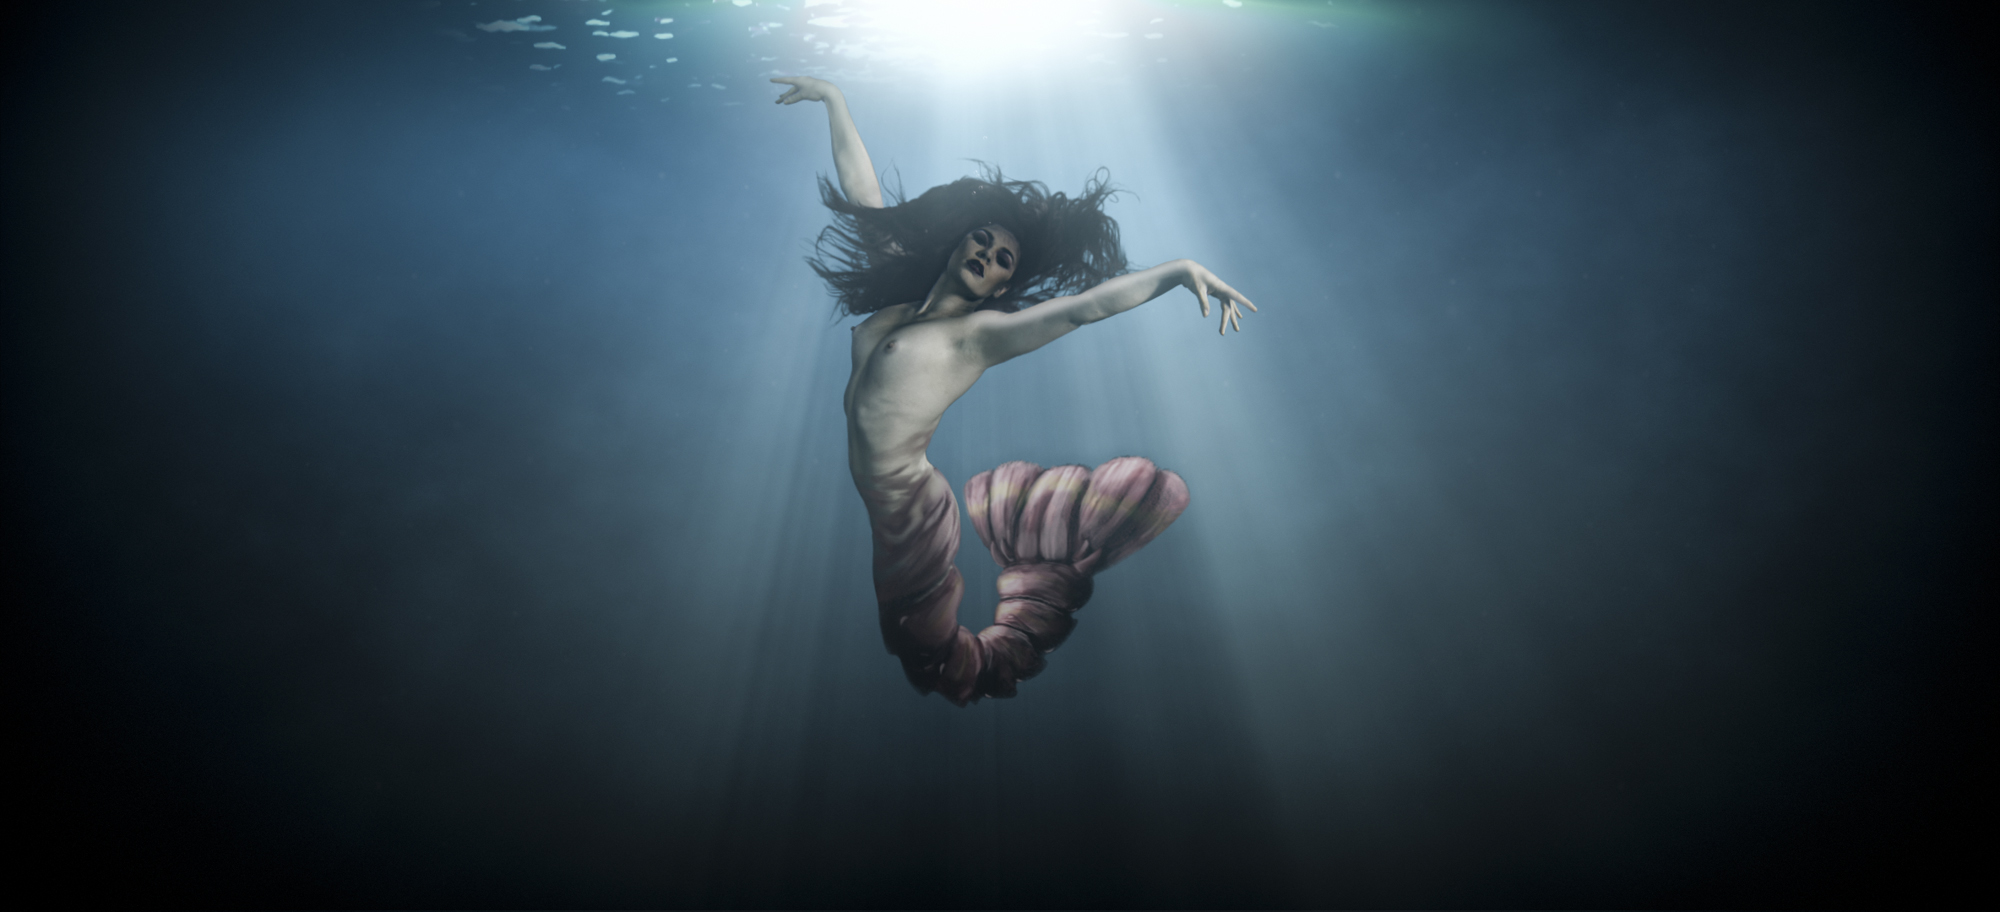 Floating Through An Underwater Shoot